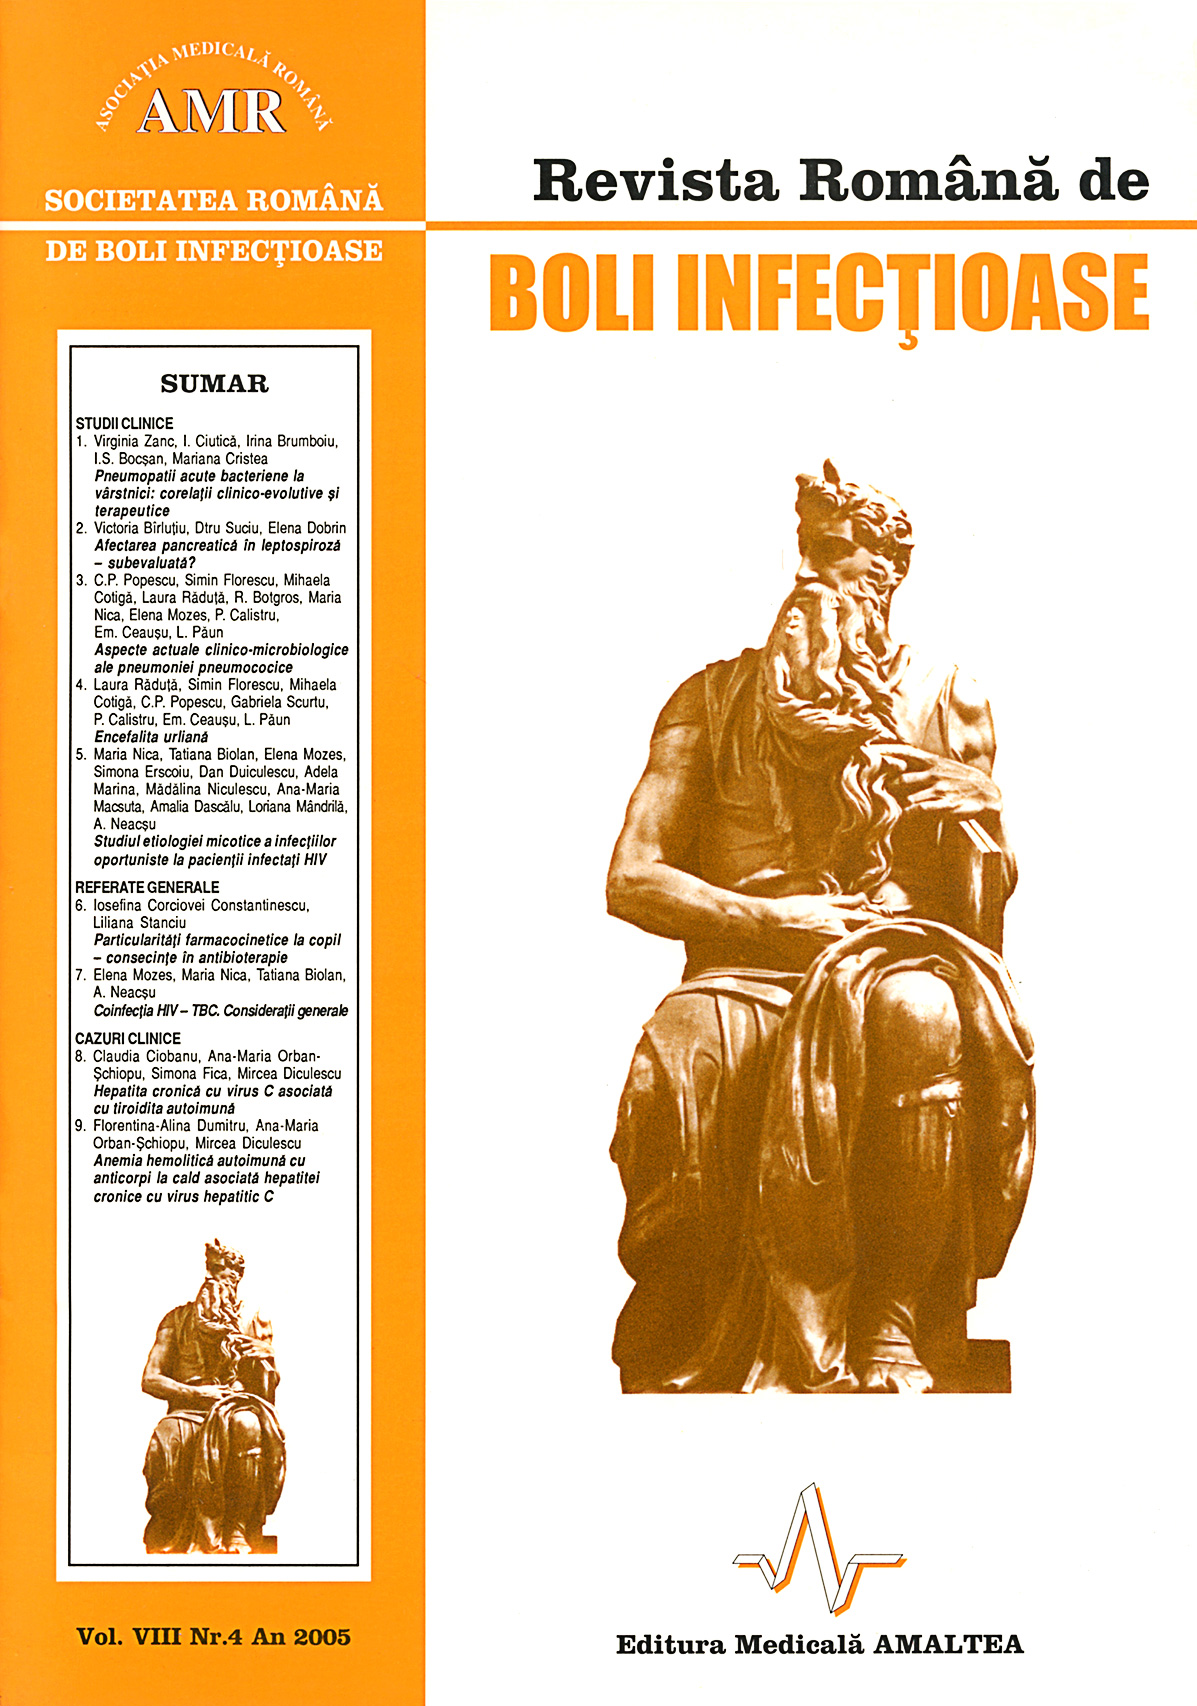 Revista Romana de Boli Infectioase | Vol. VIII, No. 4, 2005